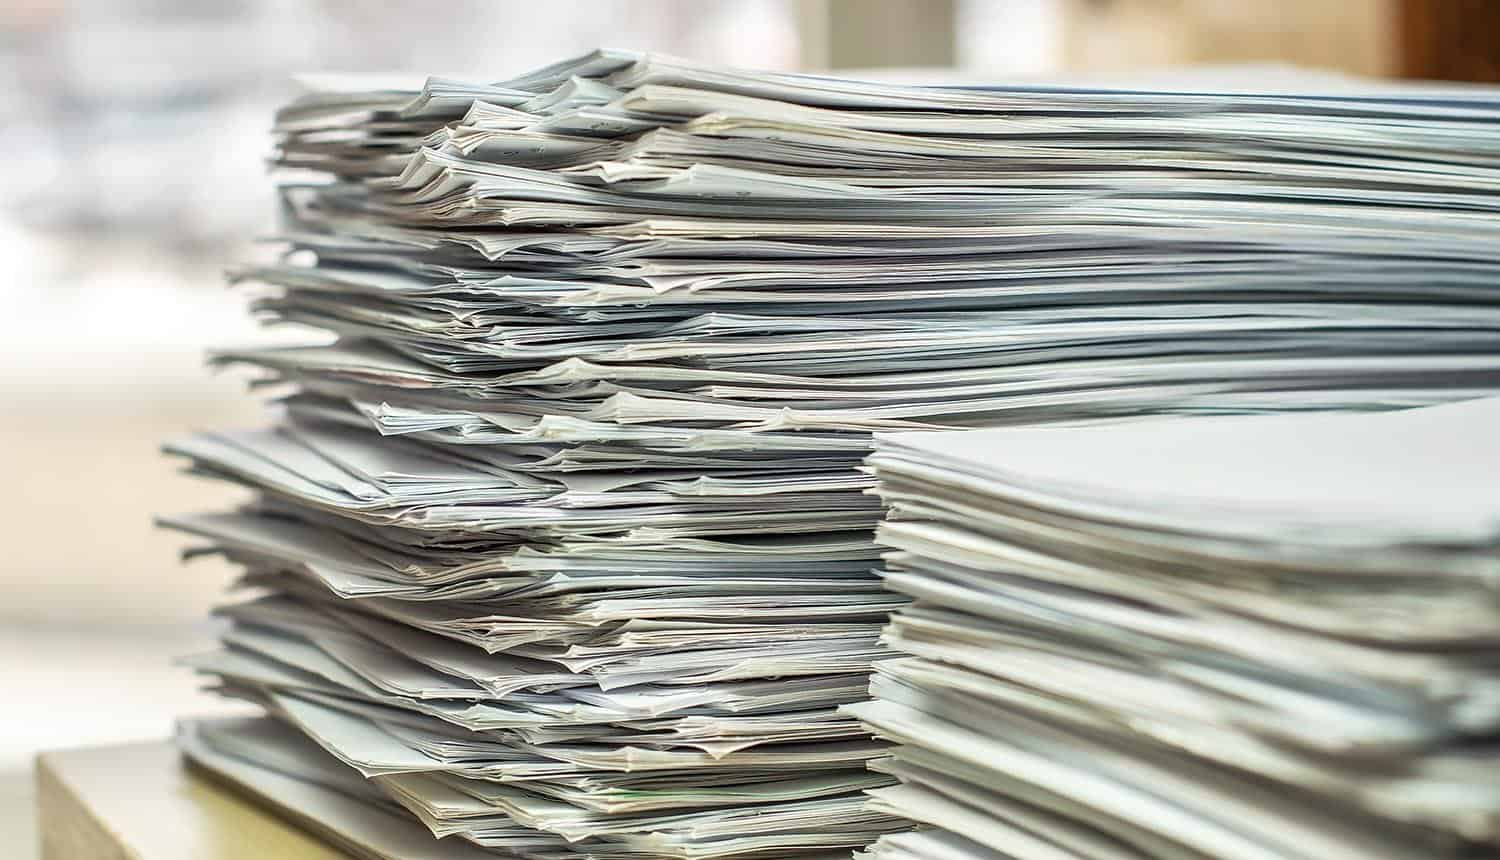 Bundles bales of paper documents showing risk of document metadata to reconnaissance